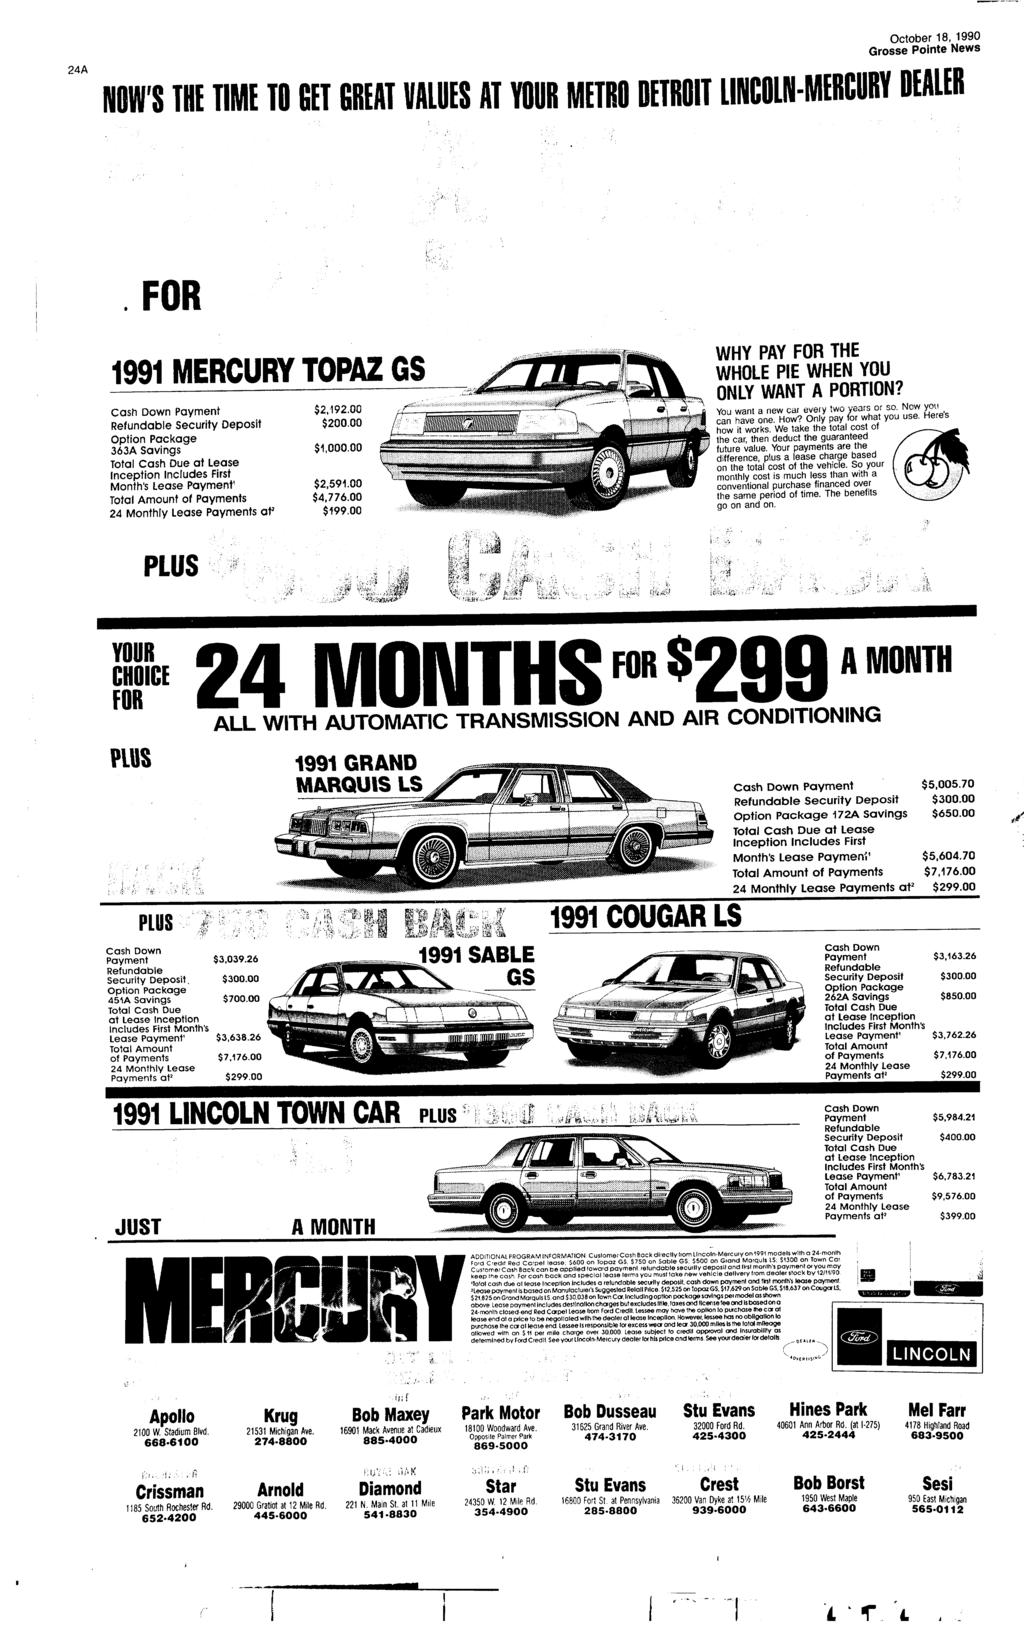 24A NOW'S THE TME TO GET GREAT VALUES AT YOUR METRO DETROT LNCOLN-MERCURY DEALER FOR 1991 MERCURY TOPAZ GS Cash Down Payment Refundable Security Deposit Option Package 363A savings Total Cash Due at